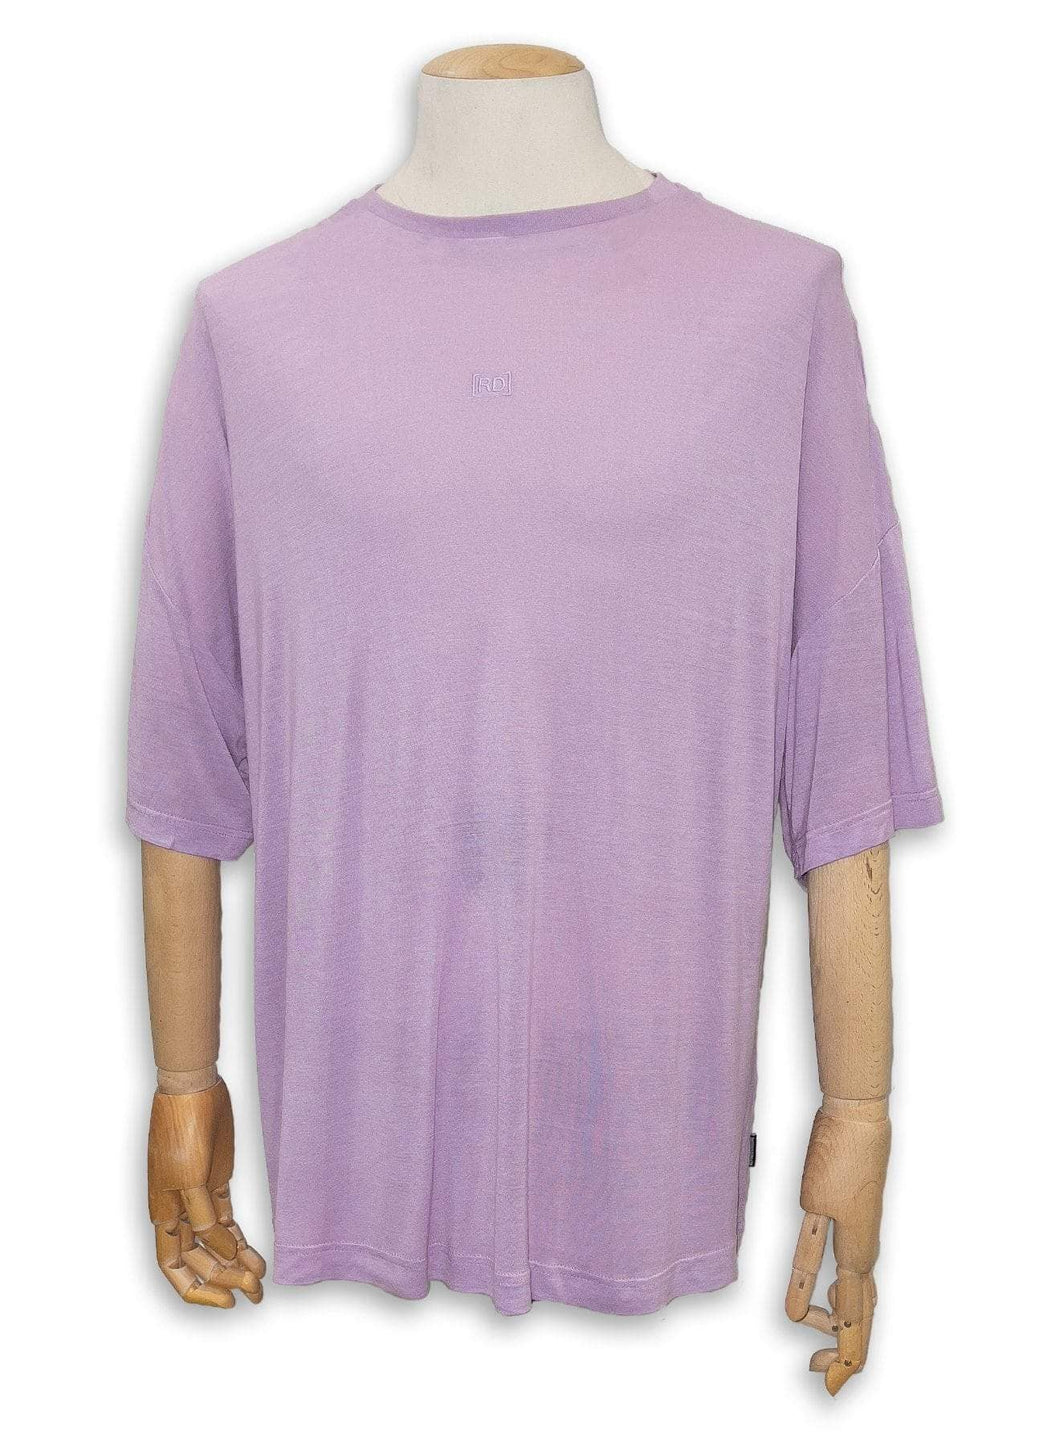 Reese Drop Tee / Lavender Frost